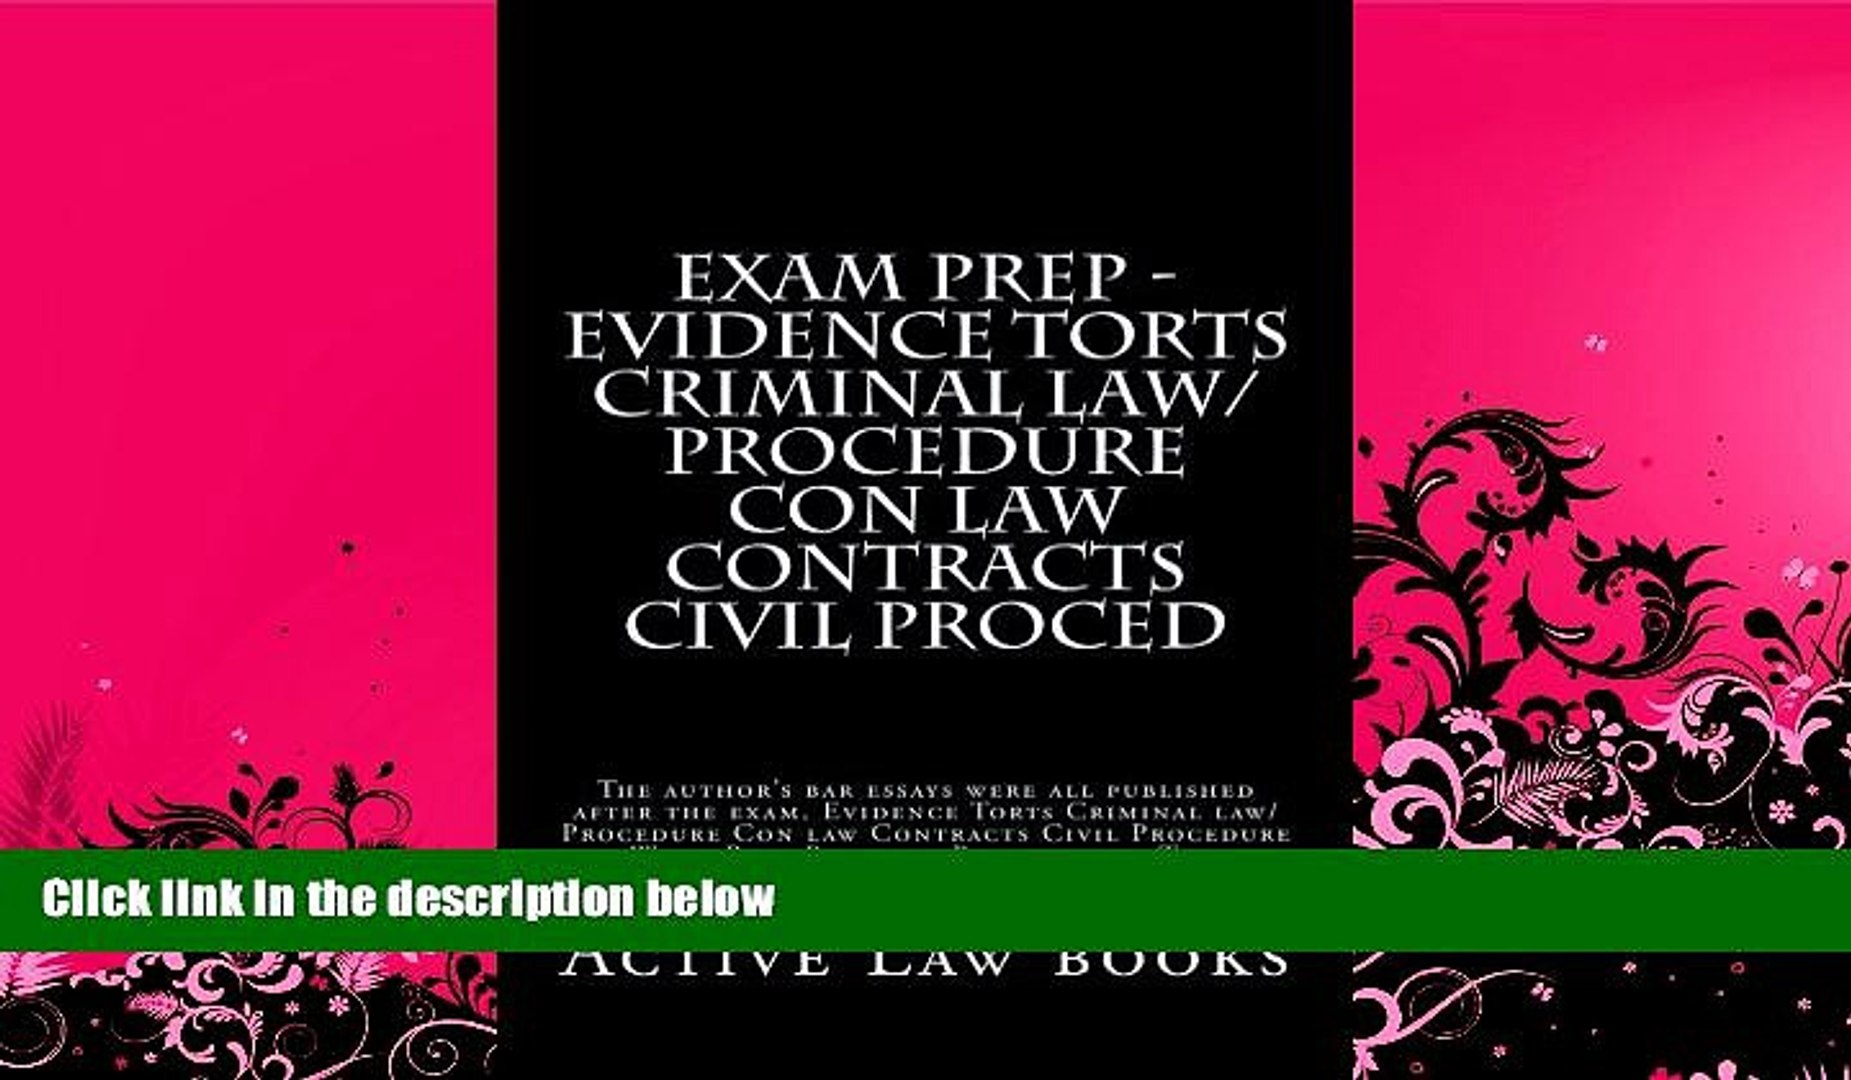 Read Online Active Law books Exam Prep - Evidence Torts Criminal  law/Procedure Con law Contracts